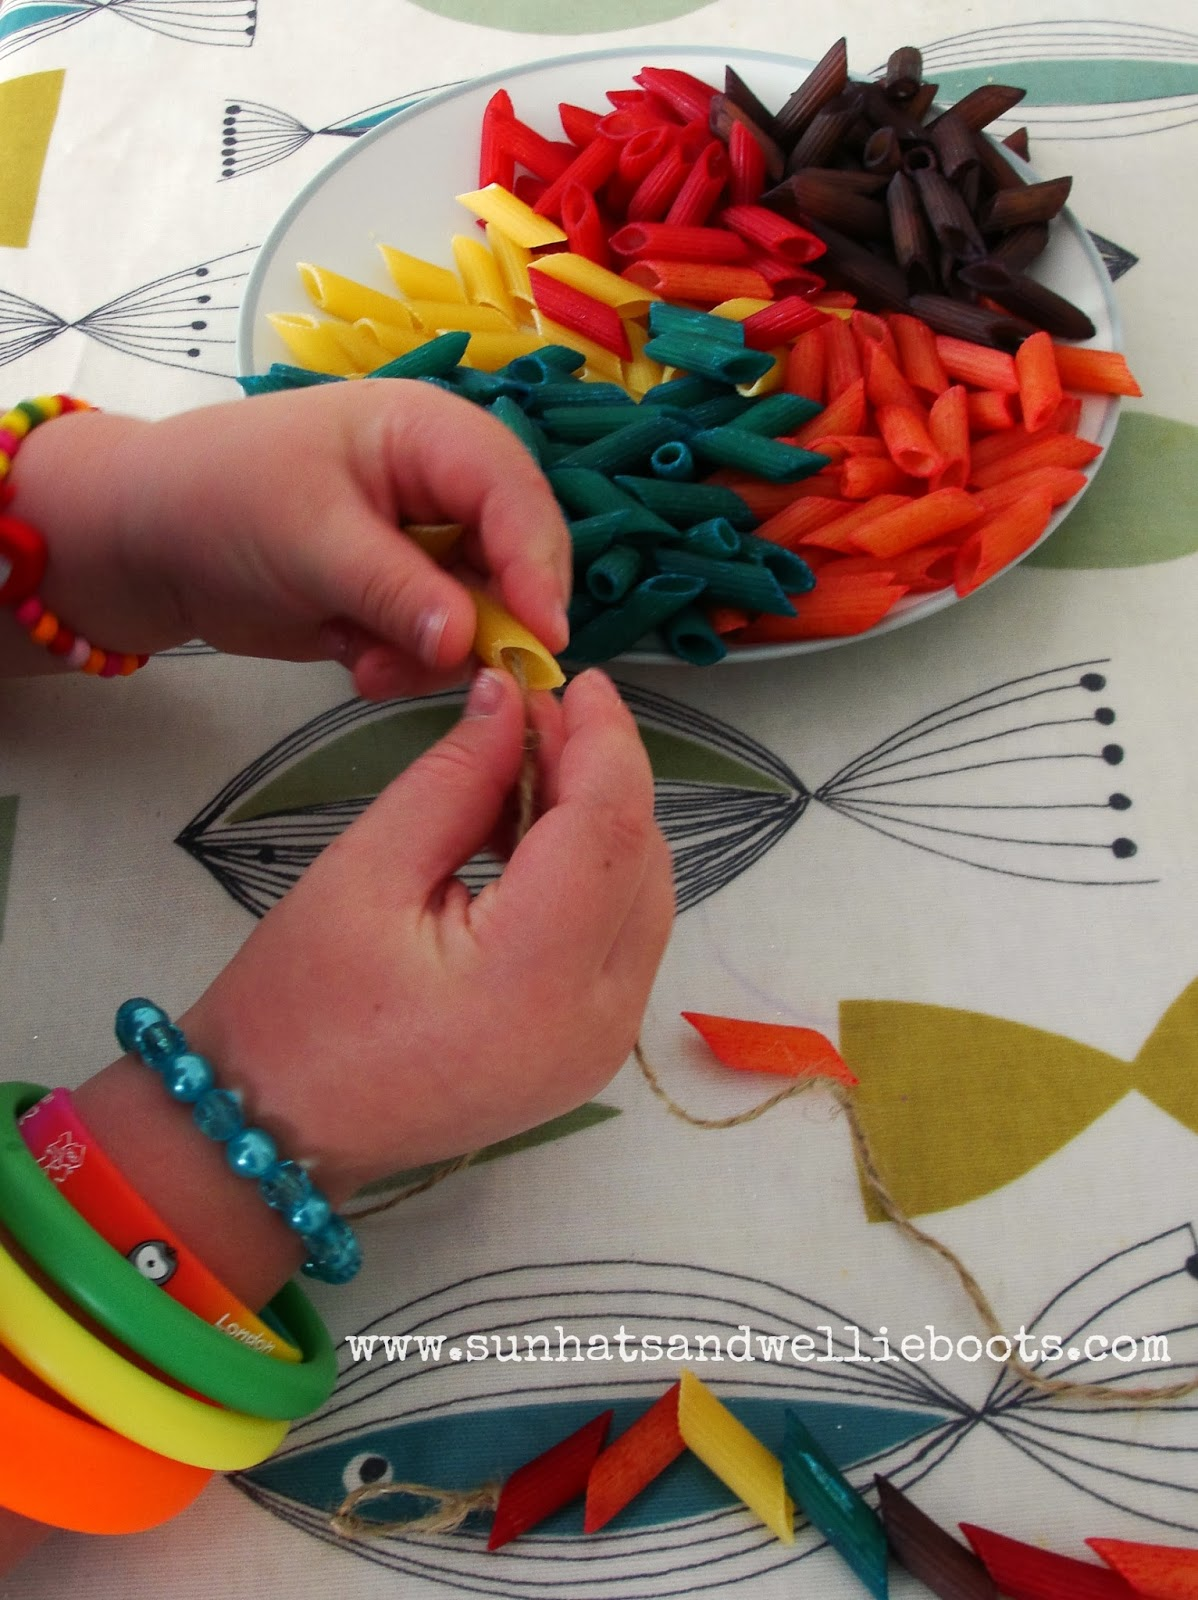 Sun Hats & Wellie Boots: Make Your Own Rainbow Sparkly Pasta Shapes ...